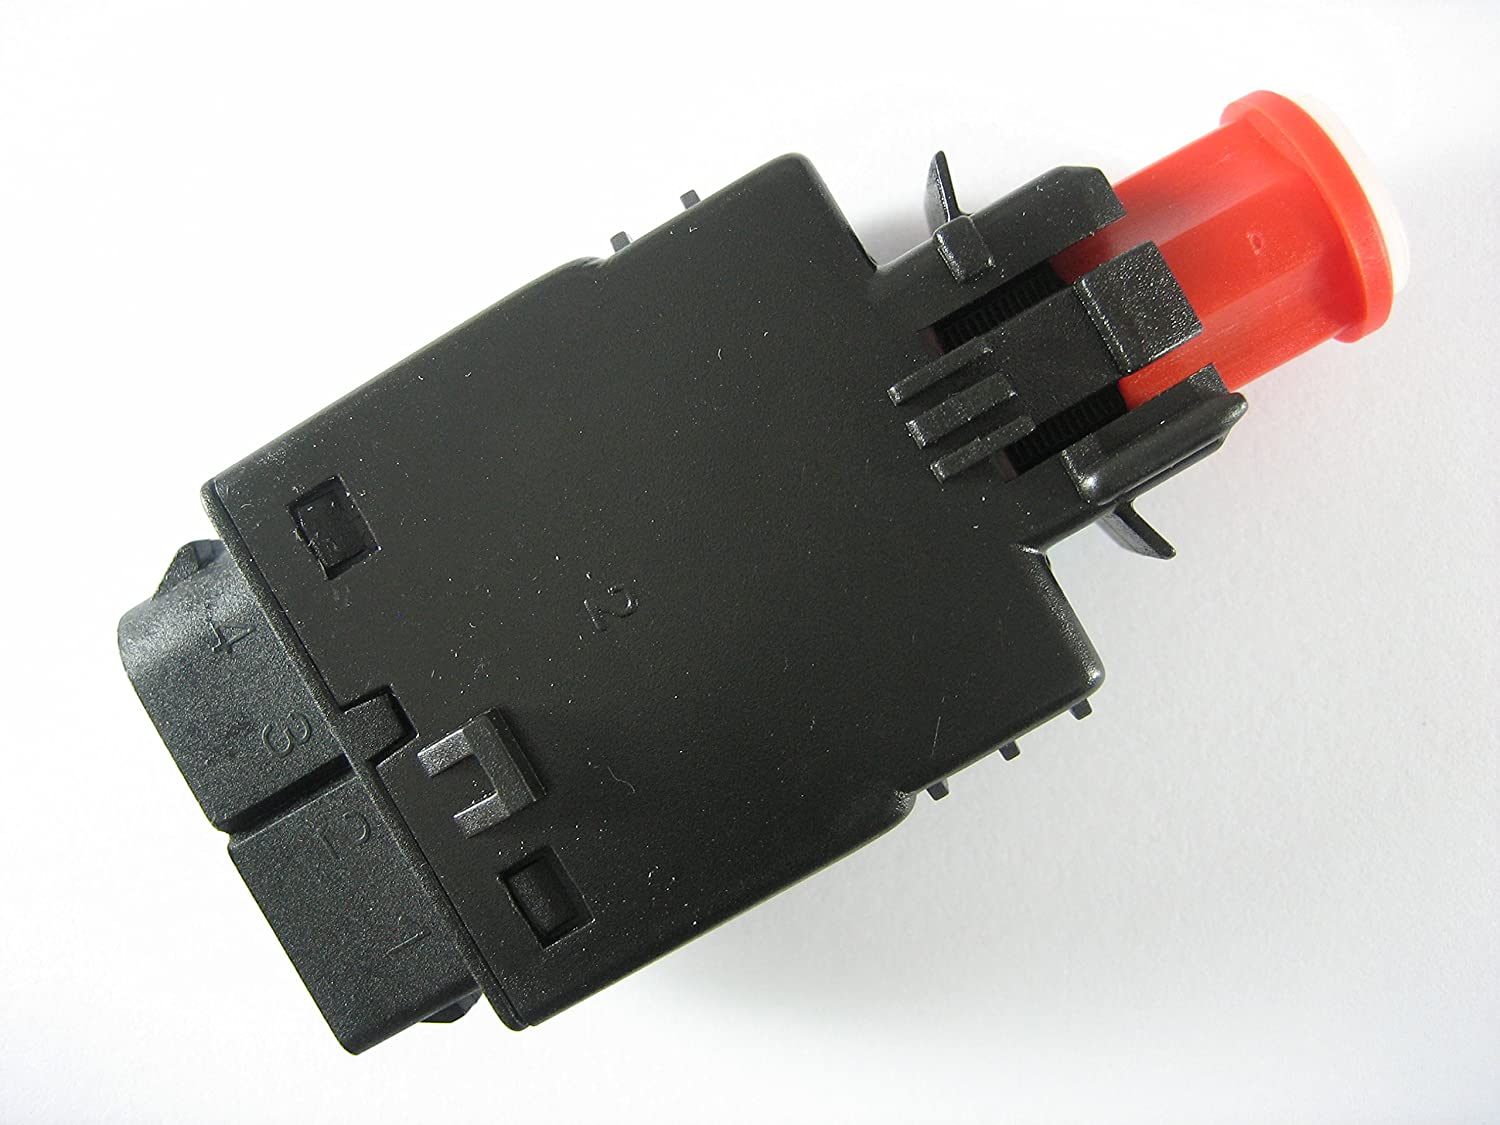 Land Rover Brake Light Switch for Discovery 1 and Range Rover Classic by Allmakes 4x4